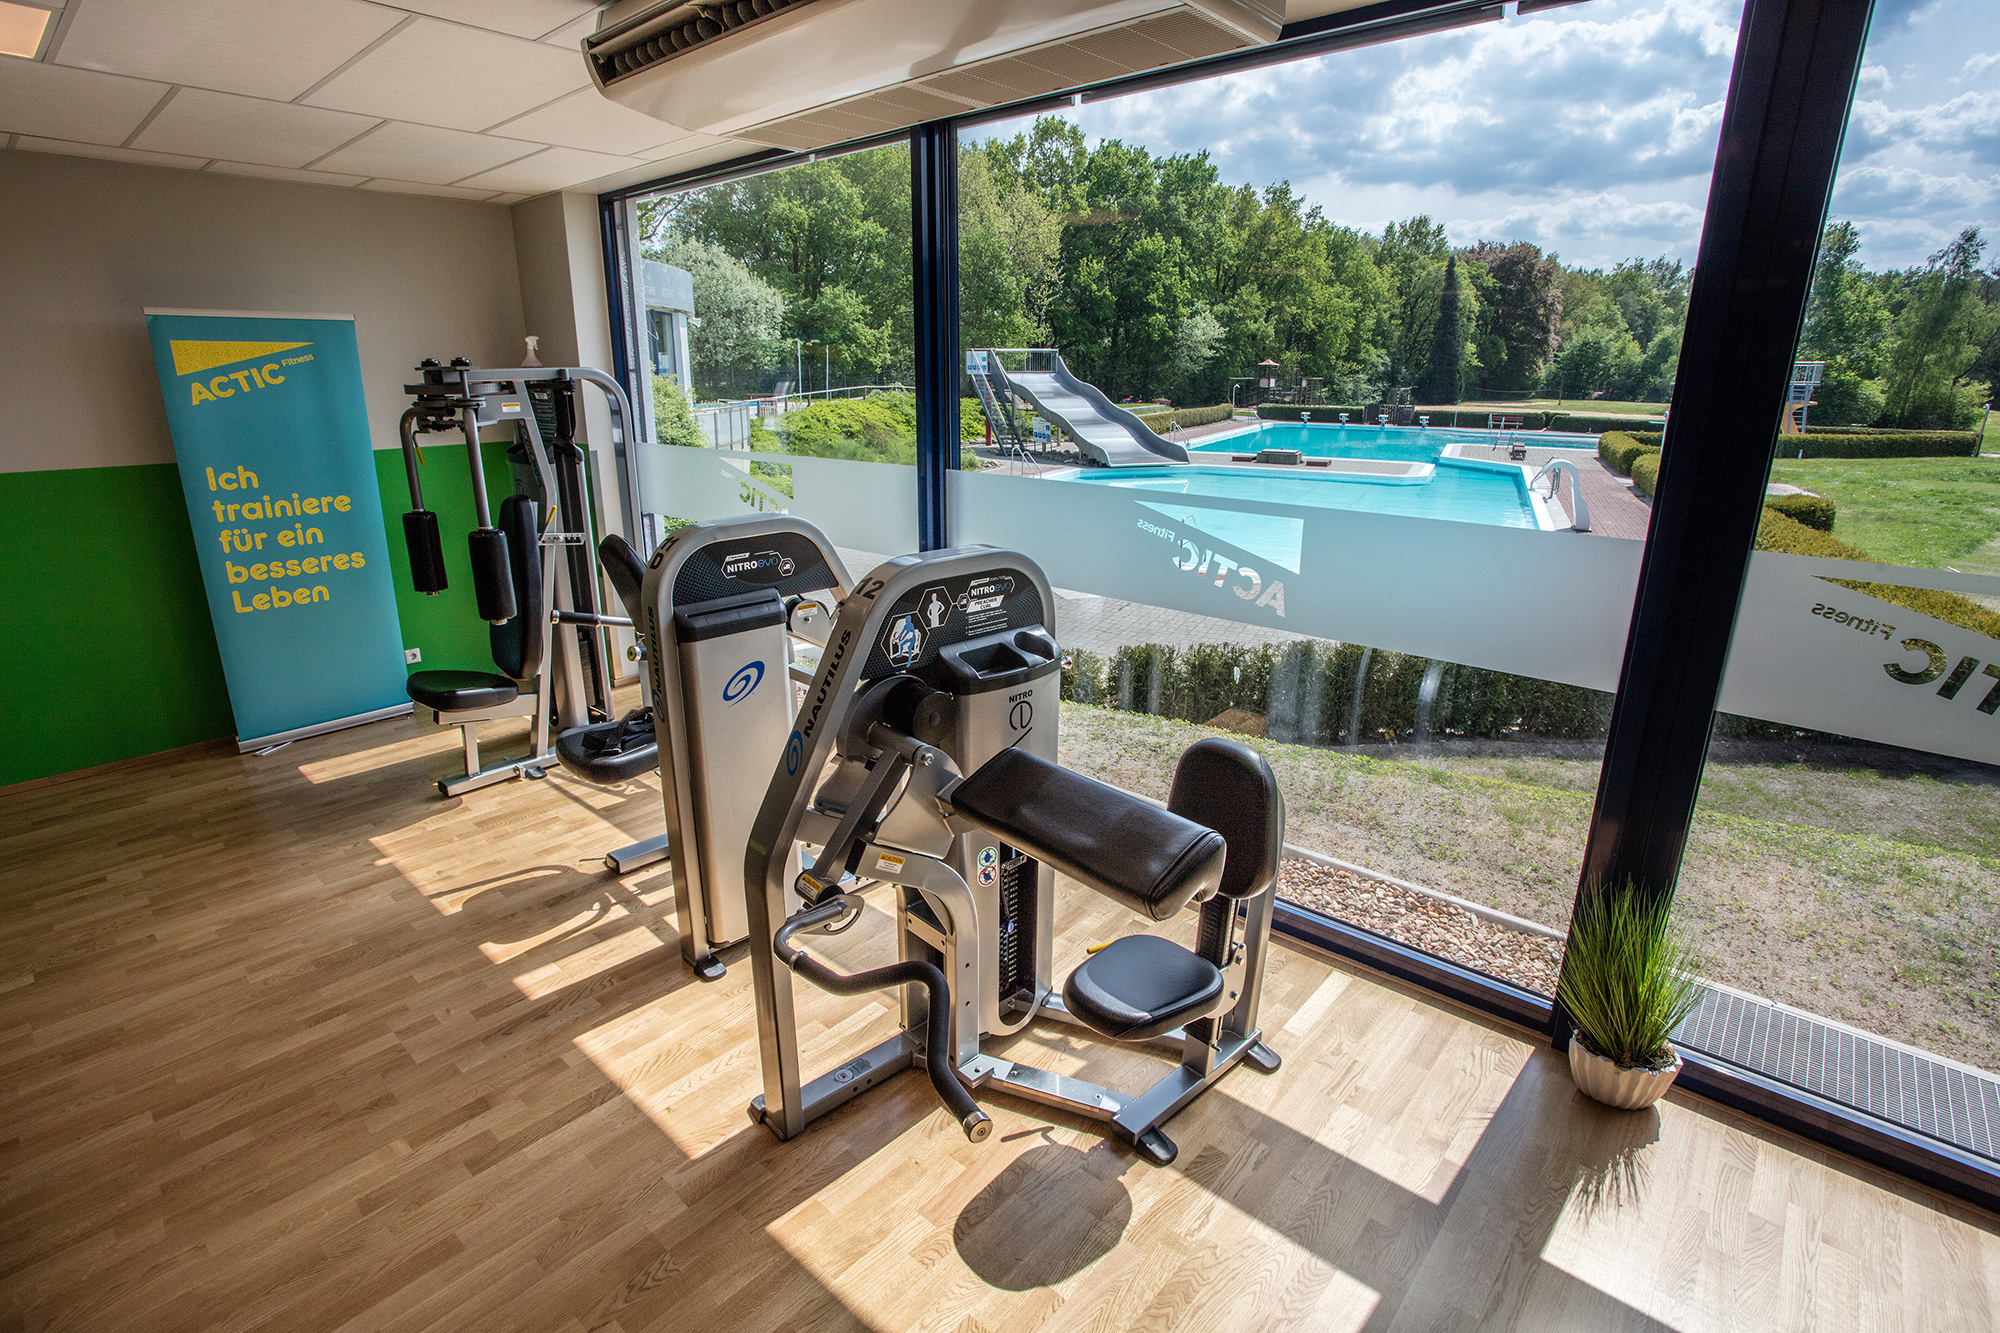 Blick_Freibad - Foto: Actic Fitness GmbH